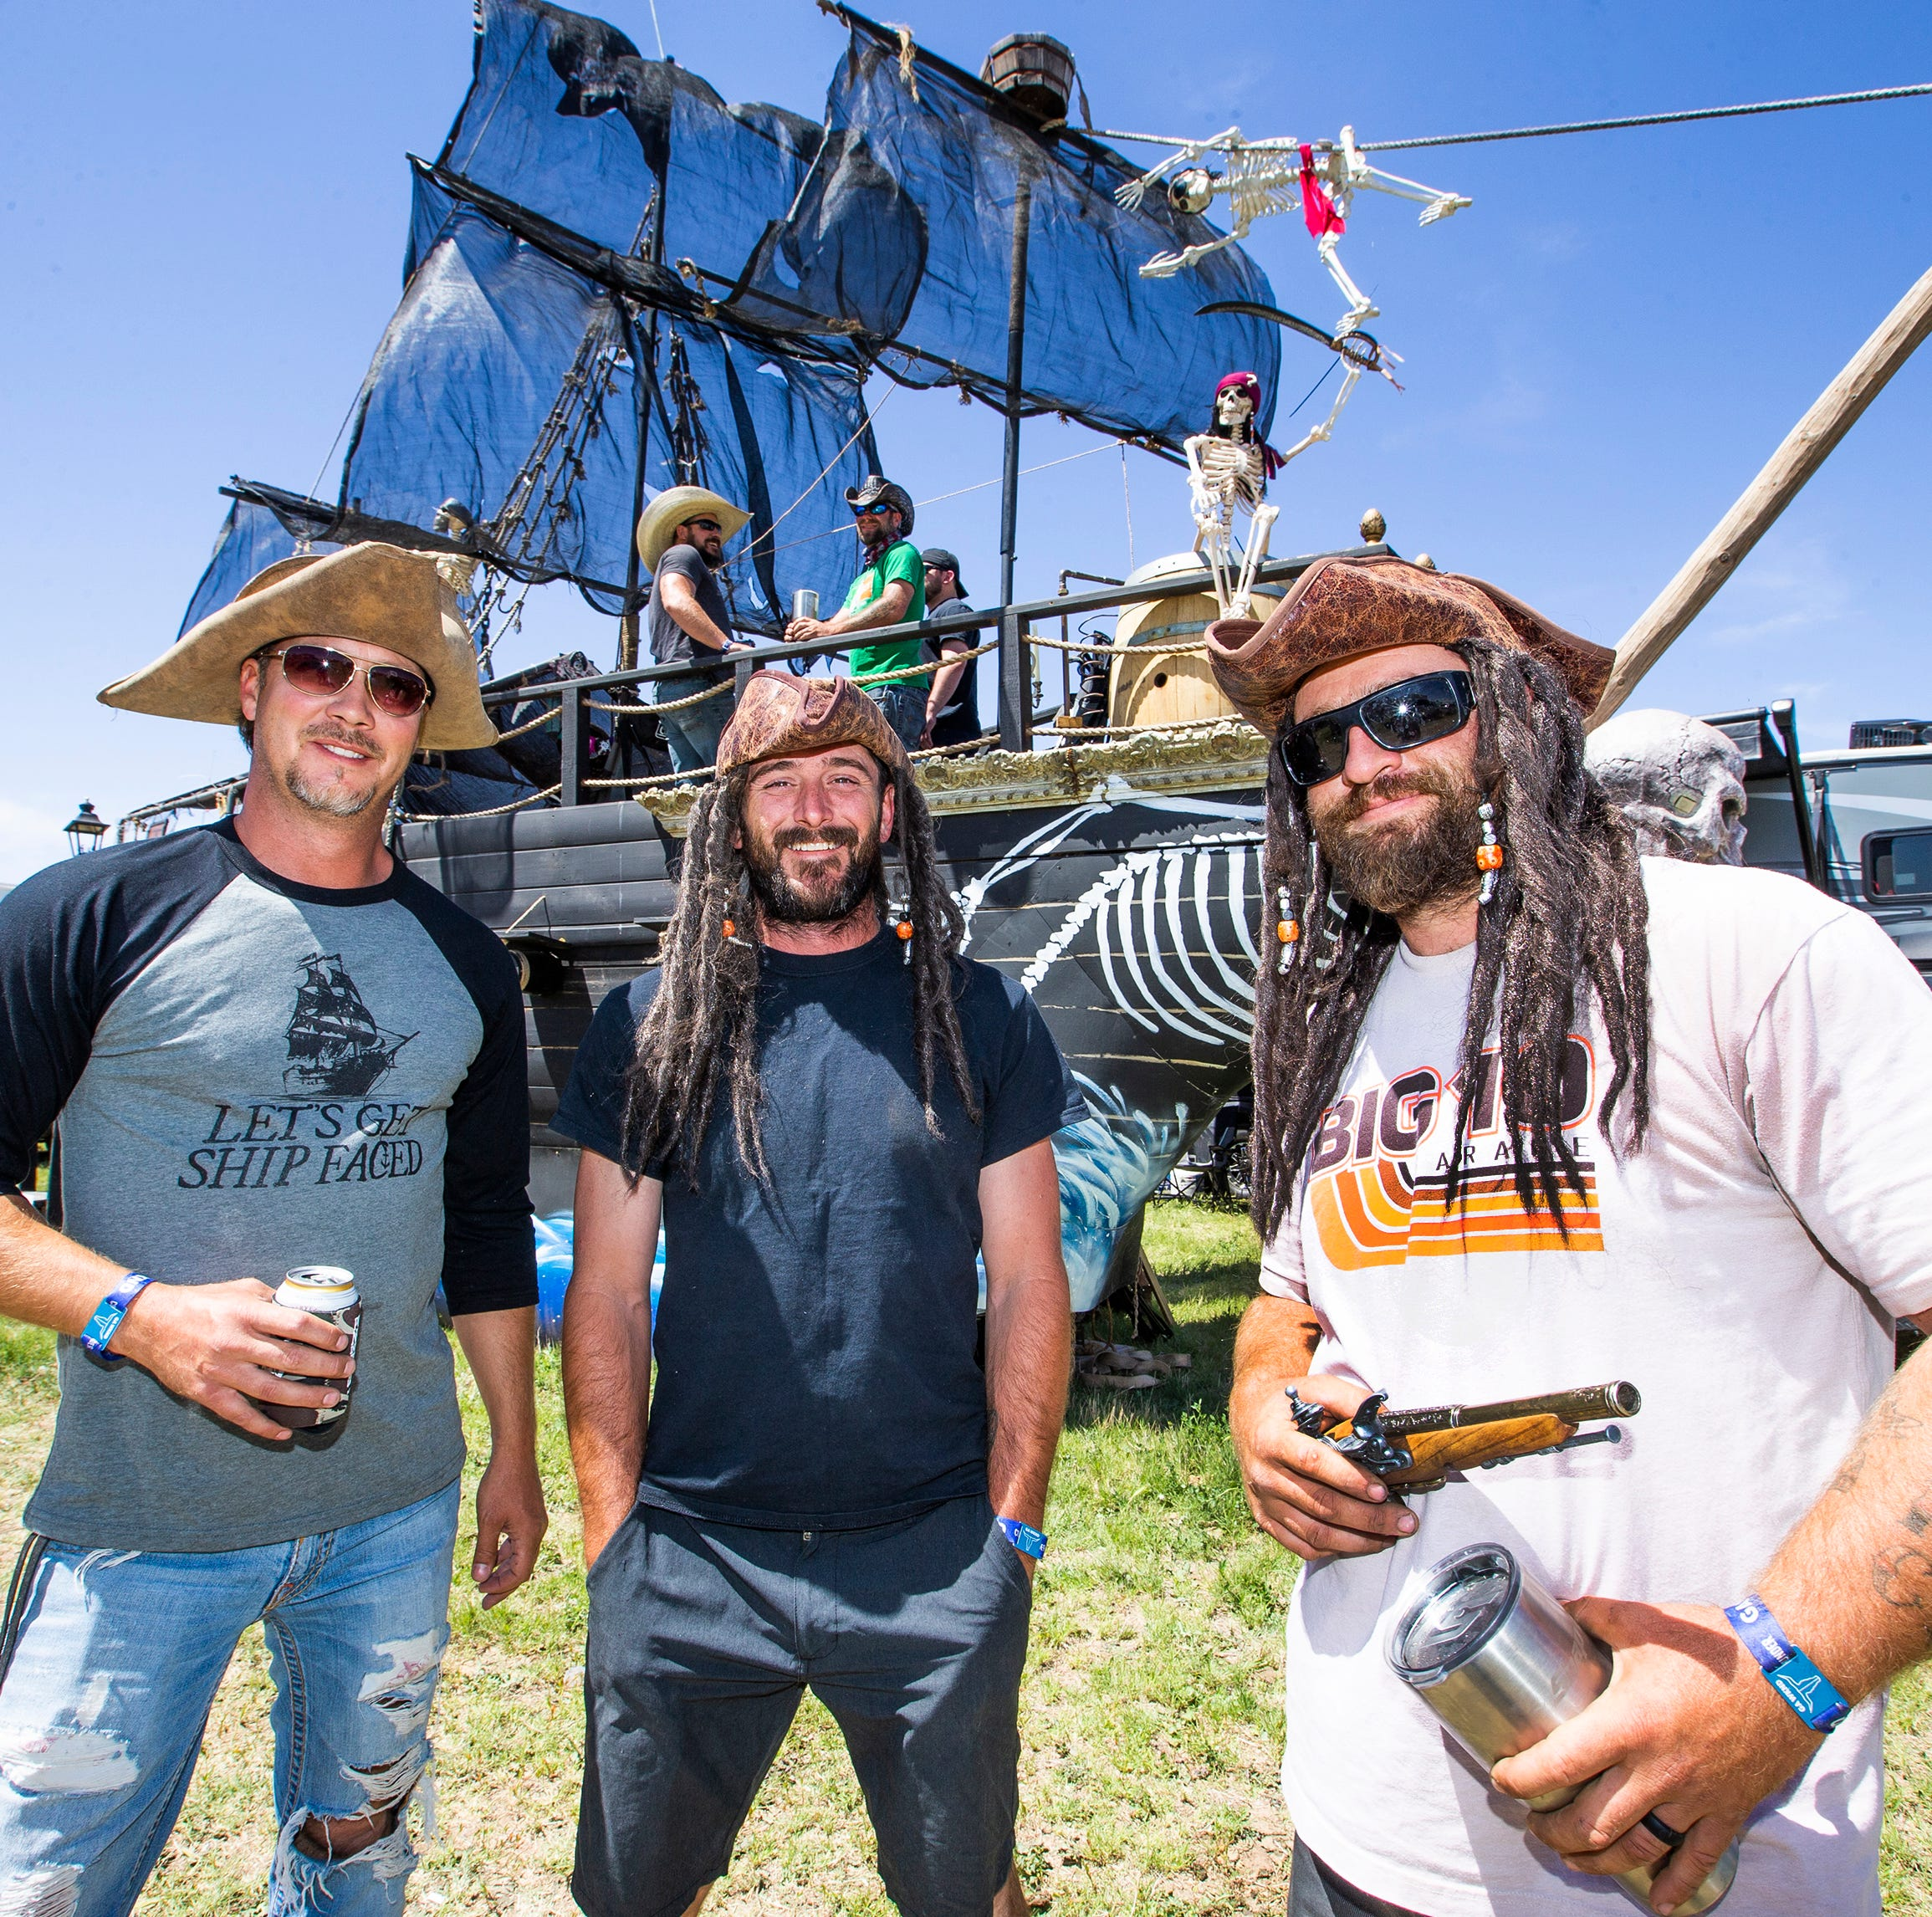 A pirate ship at Country Thunder Arizona? Here are the craziest, coolest campsites